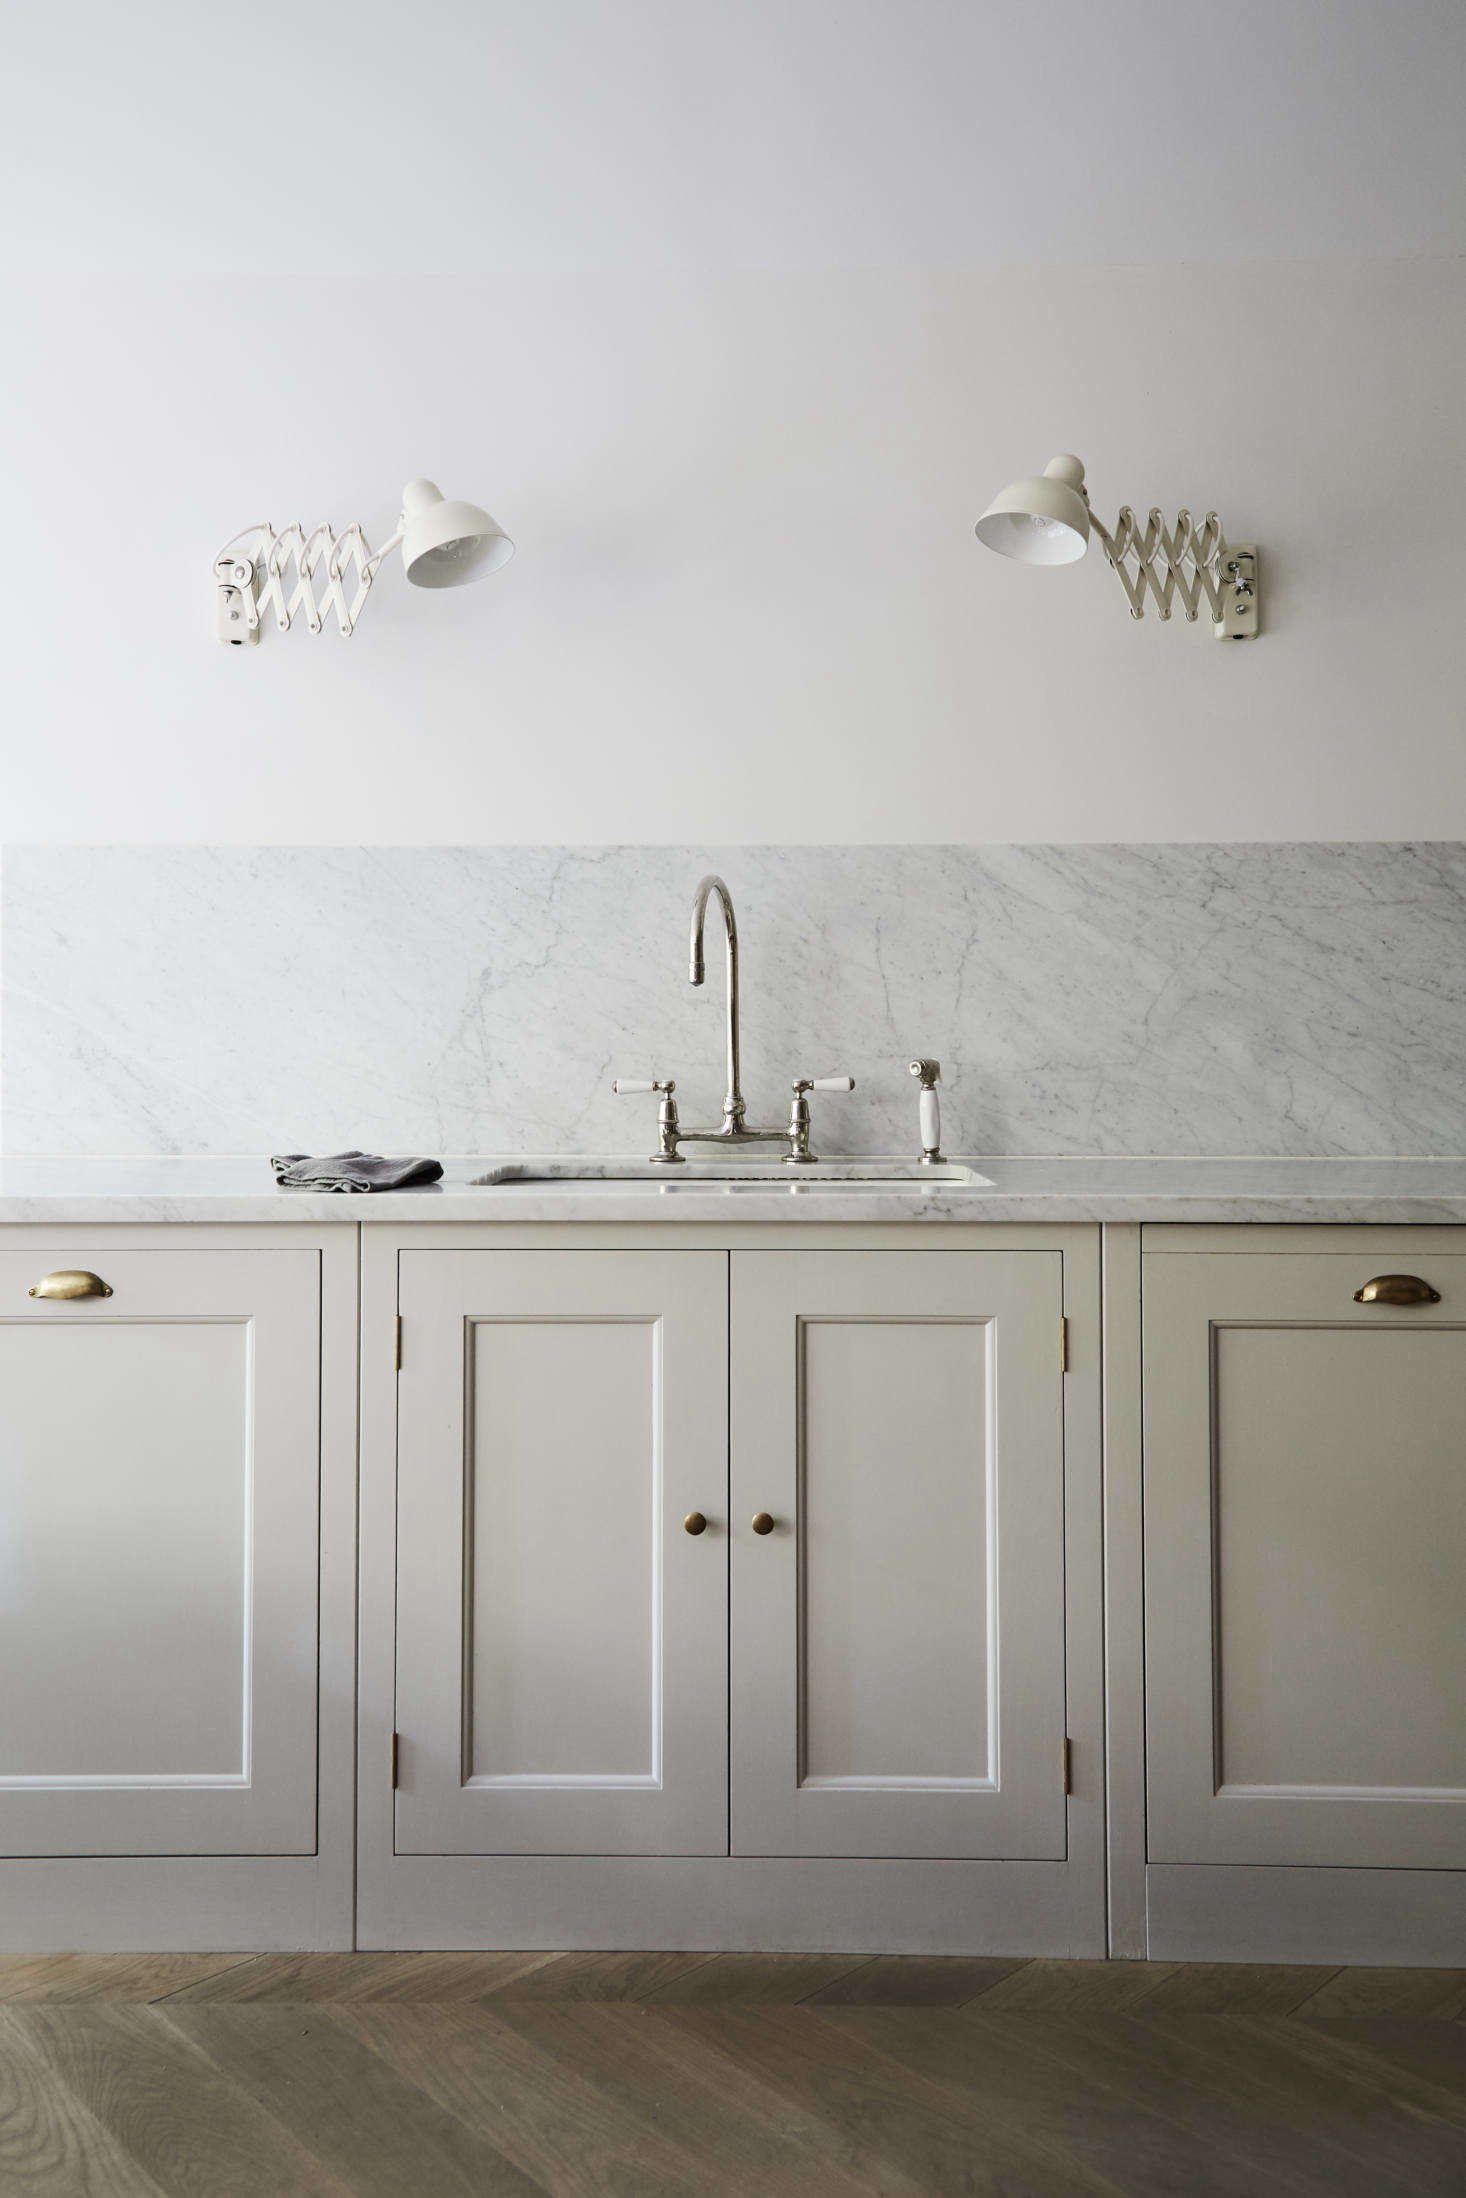 16 Favorite Solid Marble Kitchen Backsplashes, for Maximum ... on kitchen sinks soapstone, kitchen countertops soapstone, kitchen faucet soapstone,